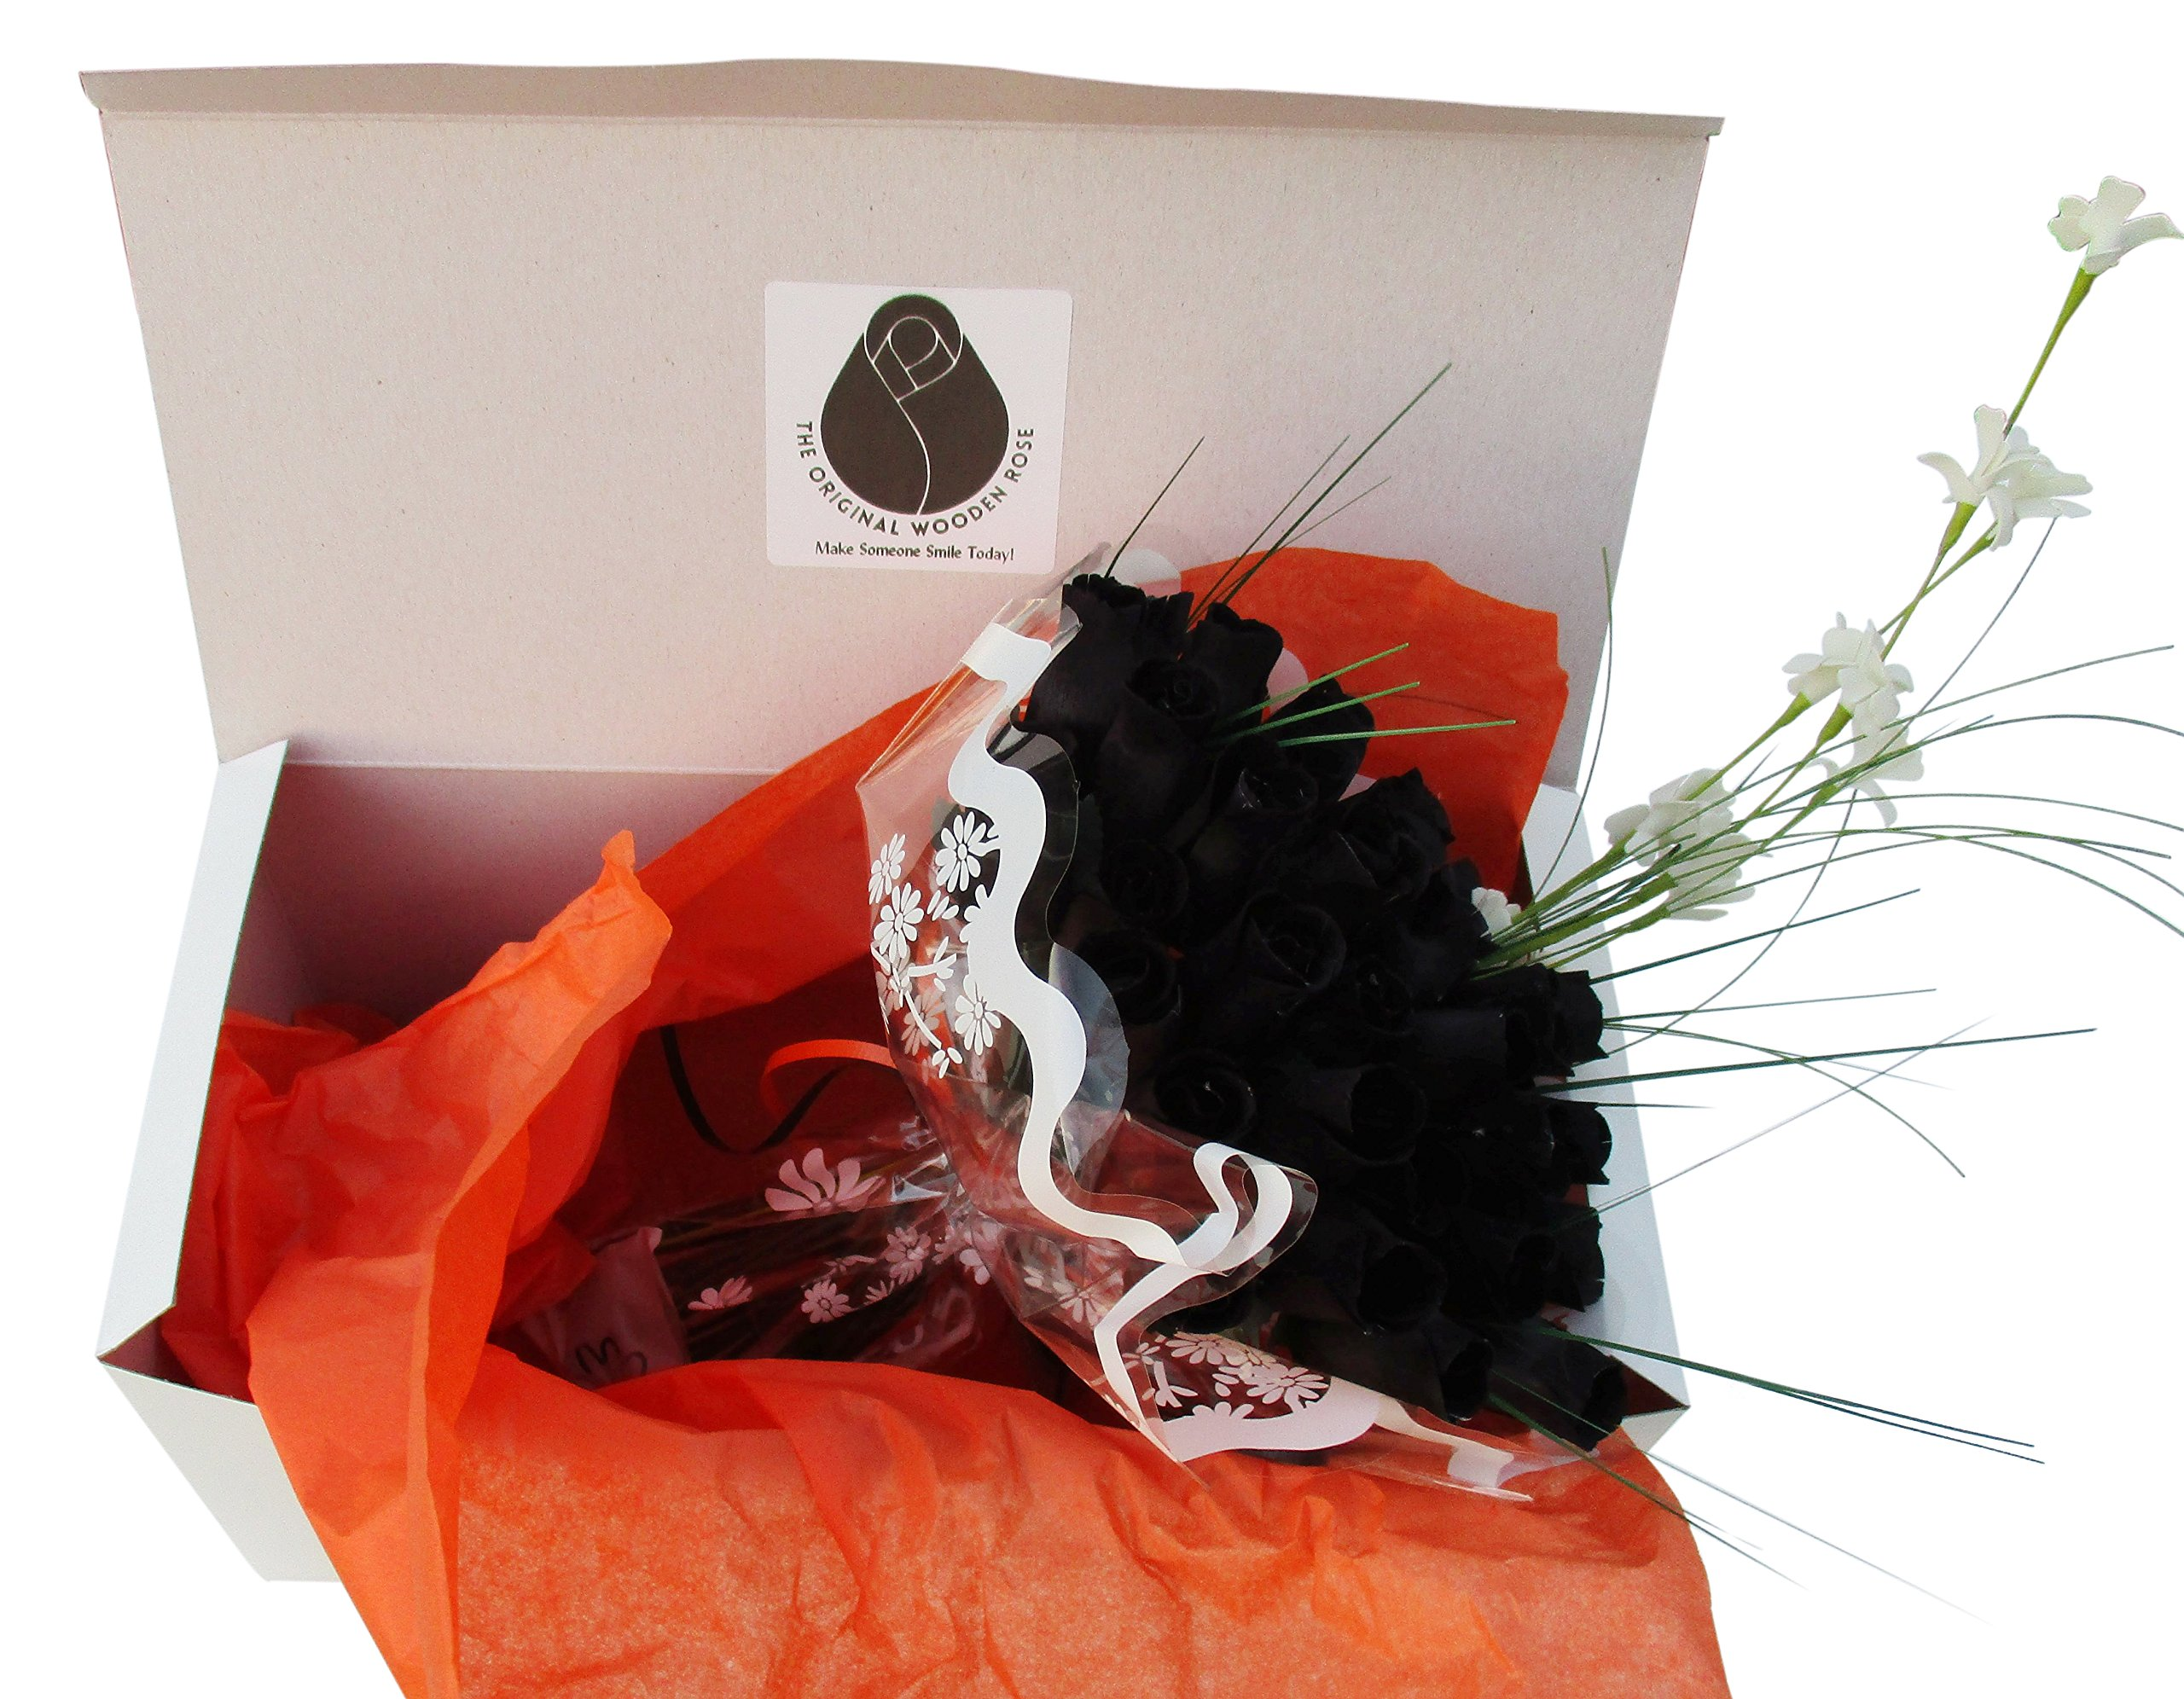 The Original Wooden Rose All Black Gothic Roses Halloween Floral Flower Bouquets in a Gift Box (3 Dozen) …